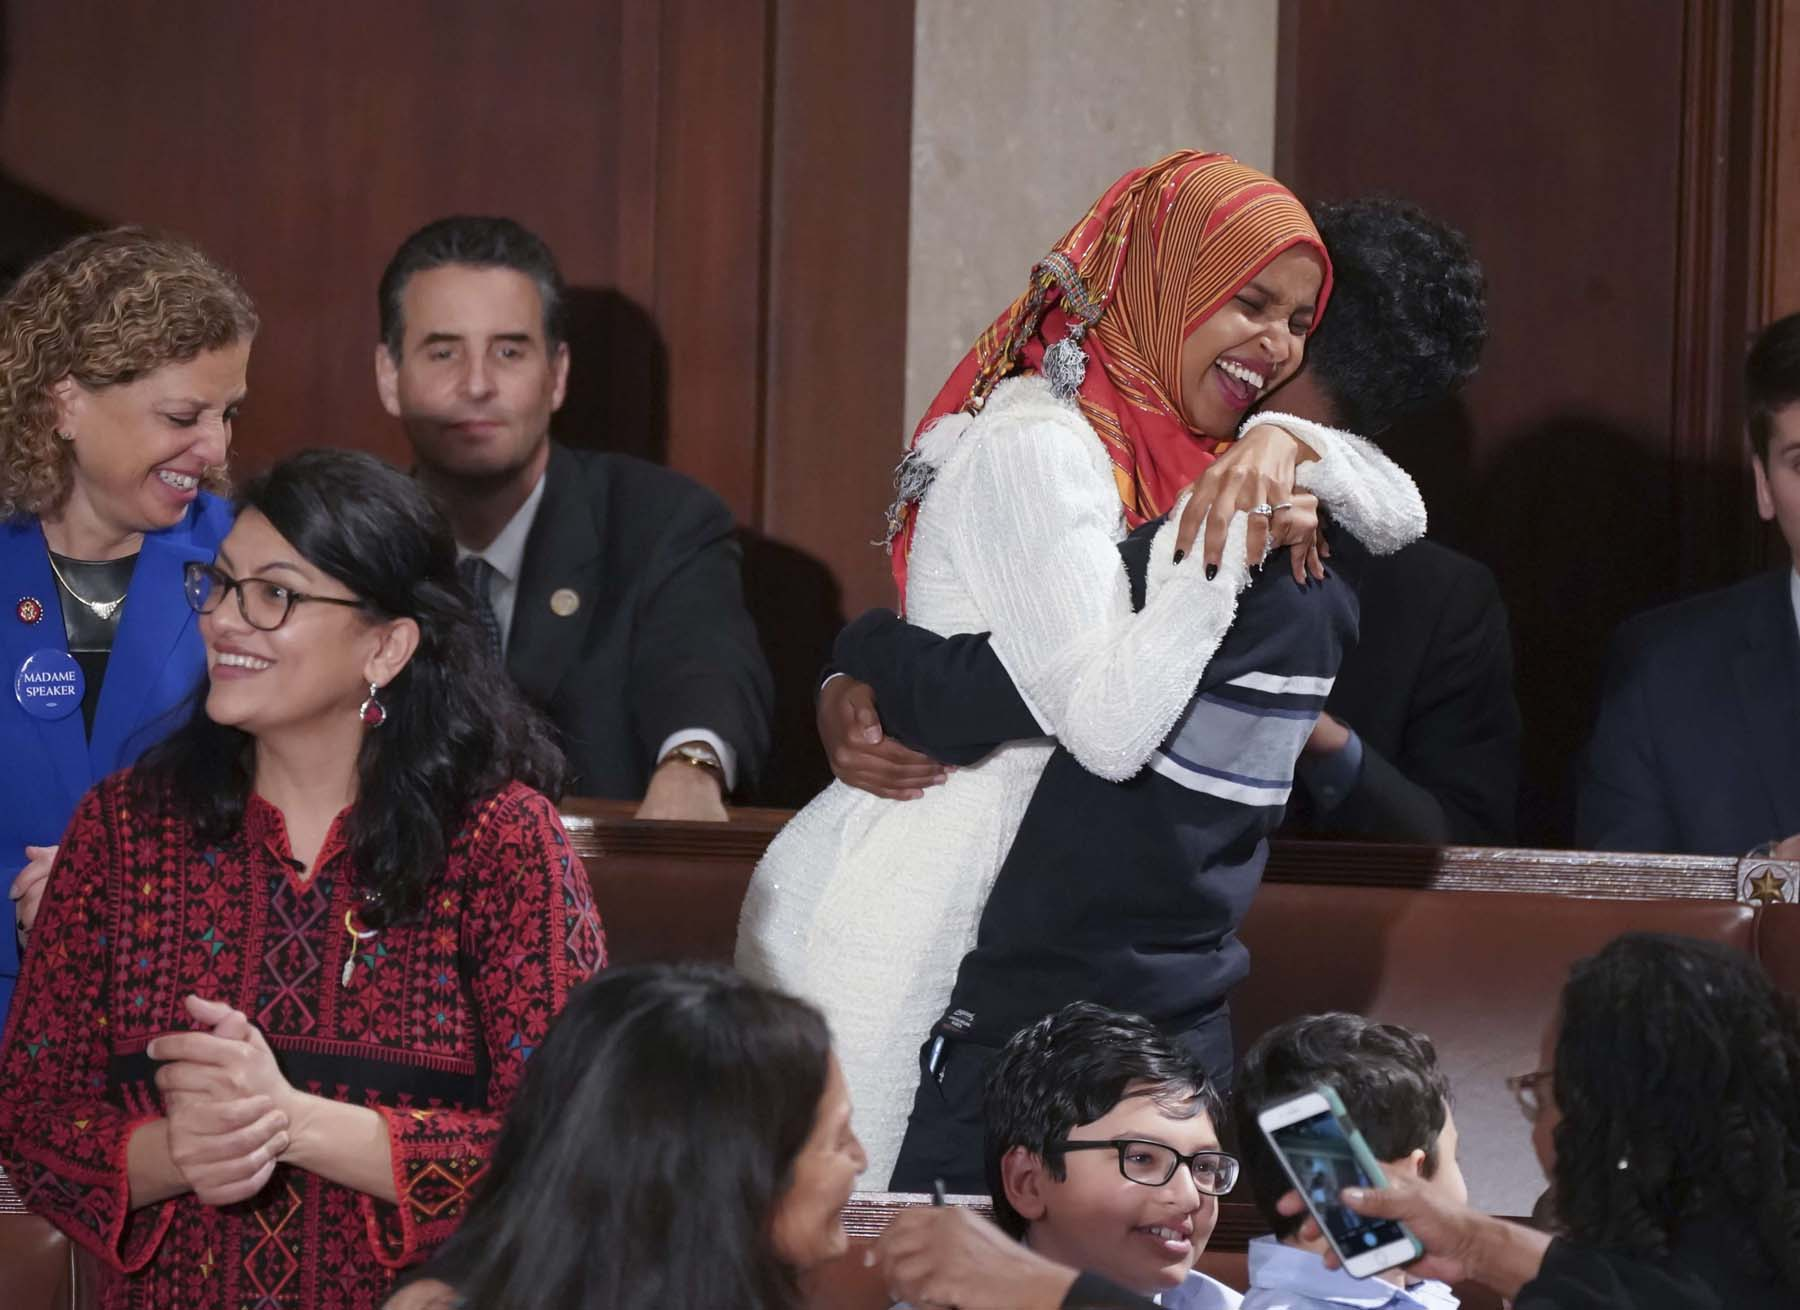 American tale. Congresswomen Rashida Tlaib of Michigan (L) and Ilhan Omar of Minnesota (R) after their swearing-in at the US House of Representatives, January 4.      (AP)